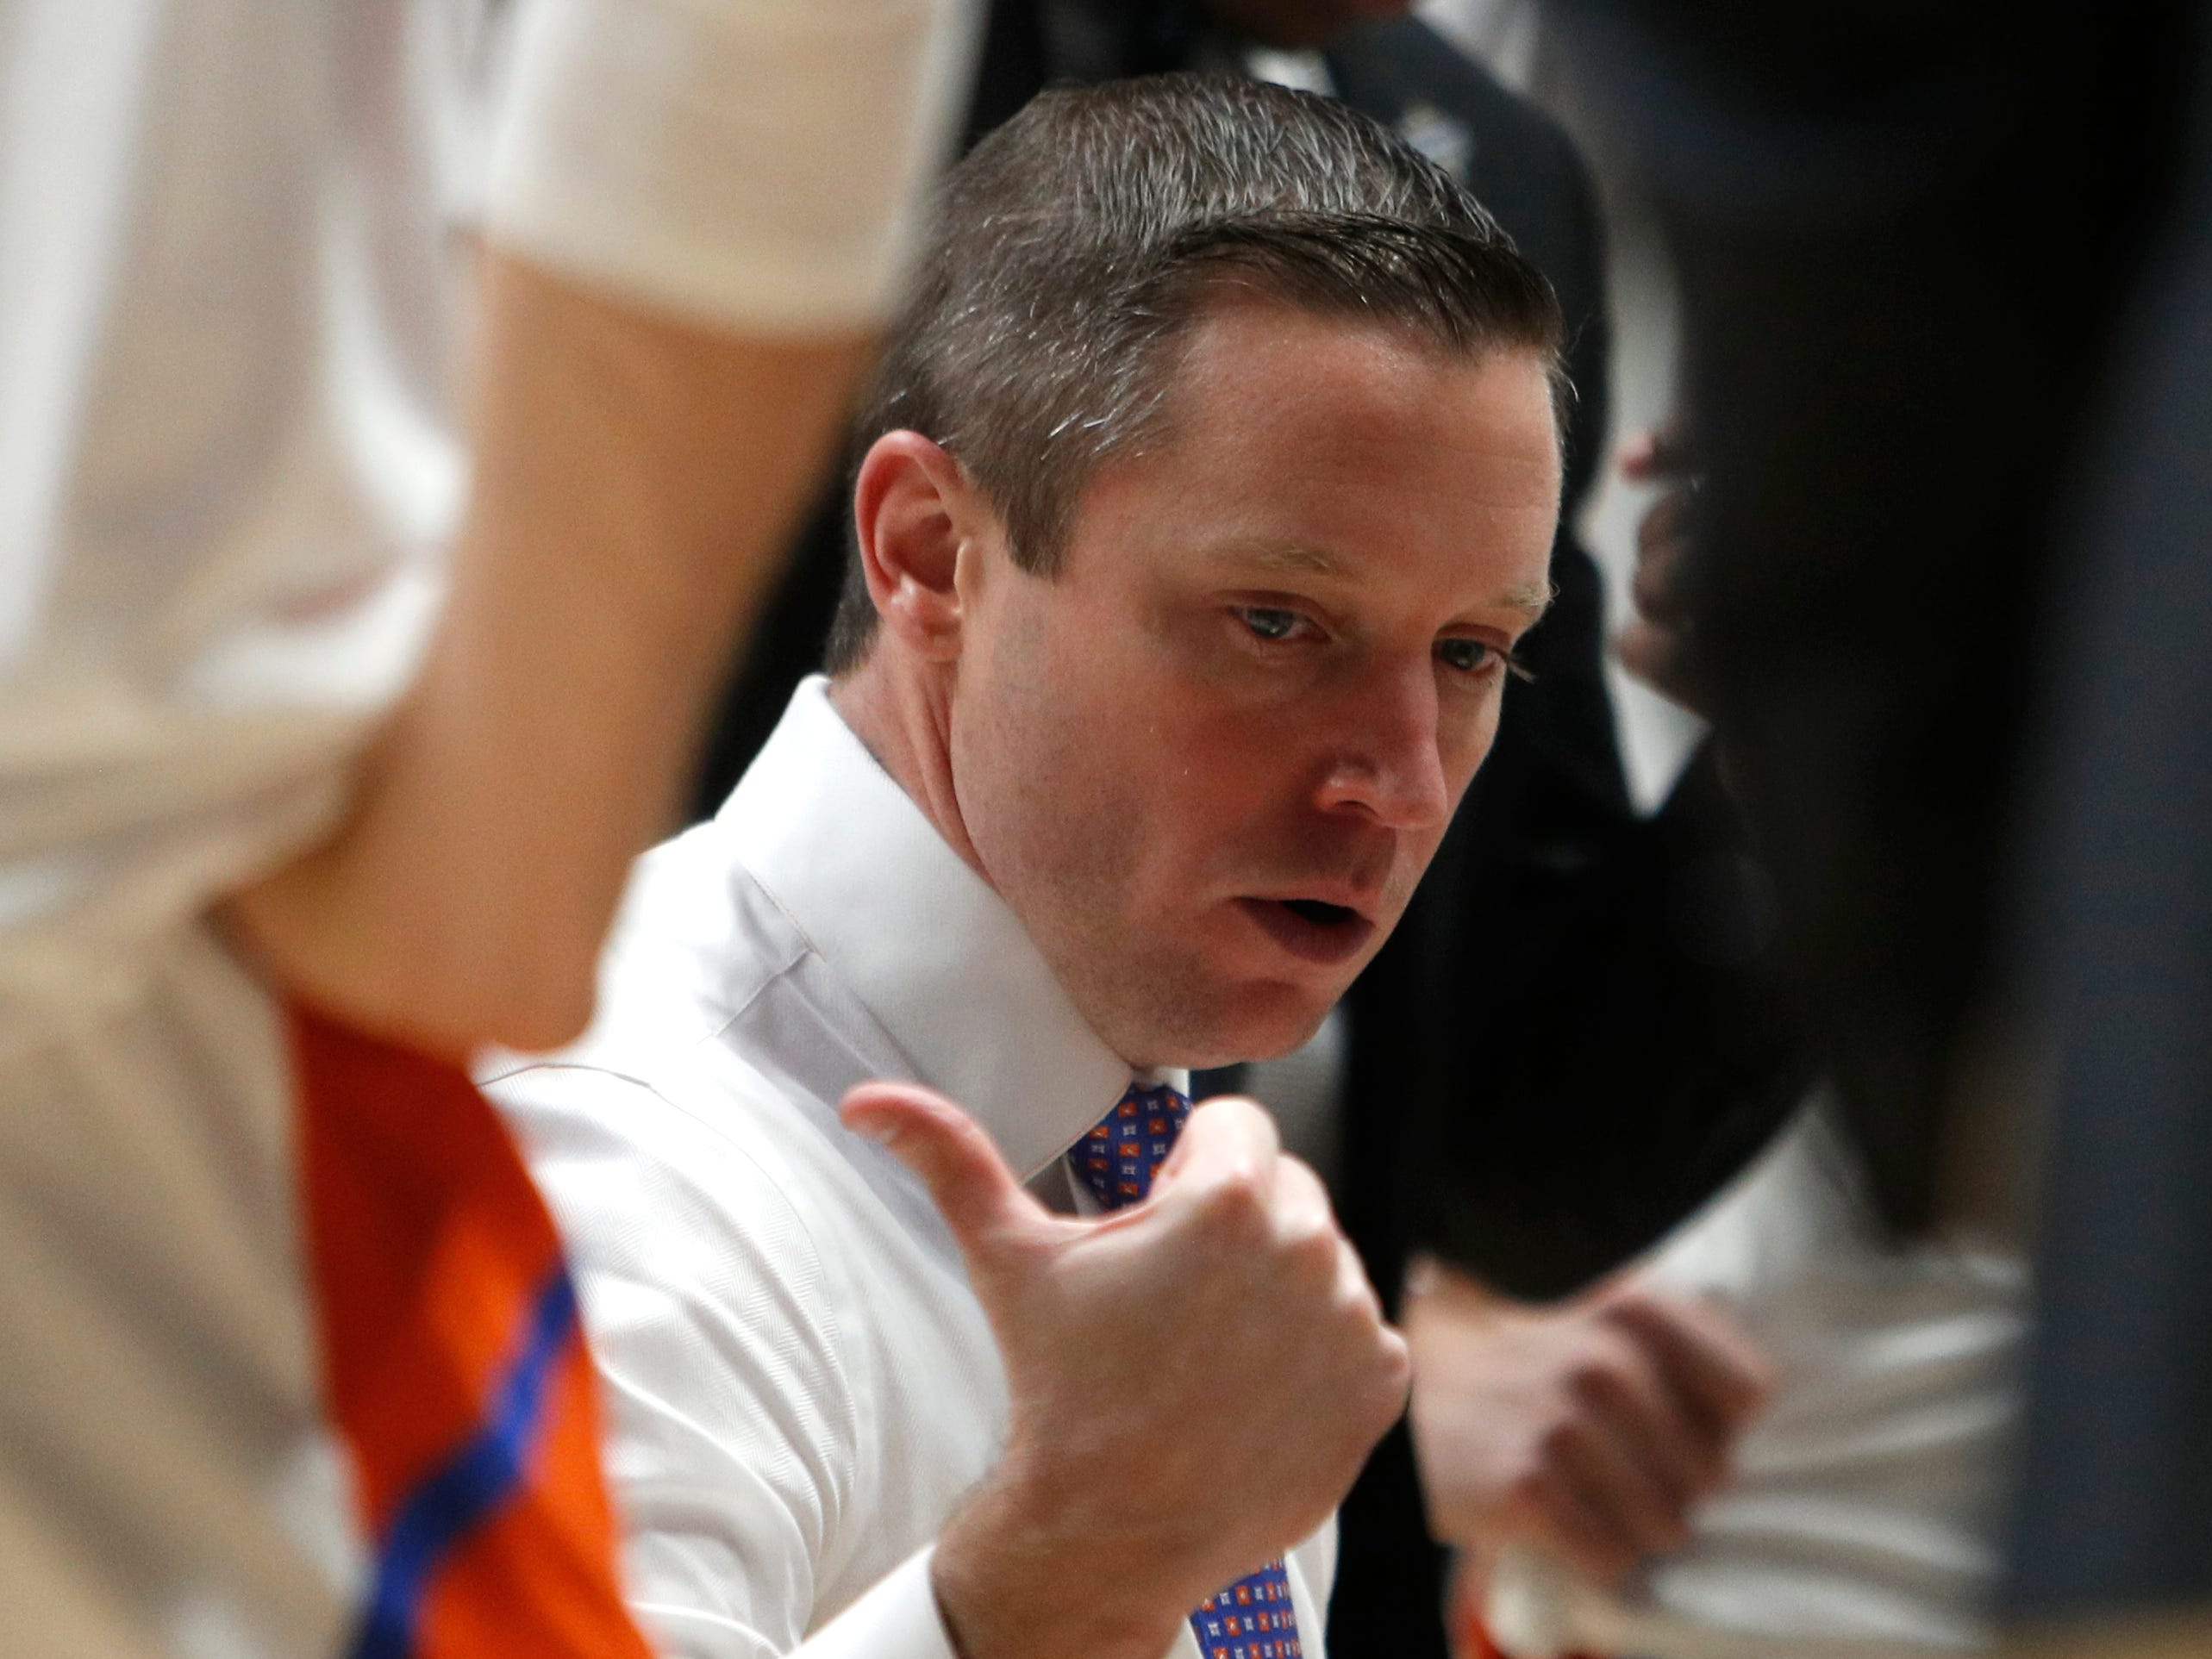 Florida head coach Mike White talks to his players during a timeout in the first half of the SEC Men's Basketball Tournament game at Bridgestone Arena in Nashville, Tenn., Thursday, March 14, 2019.